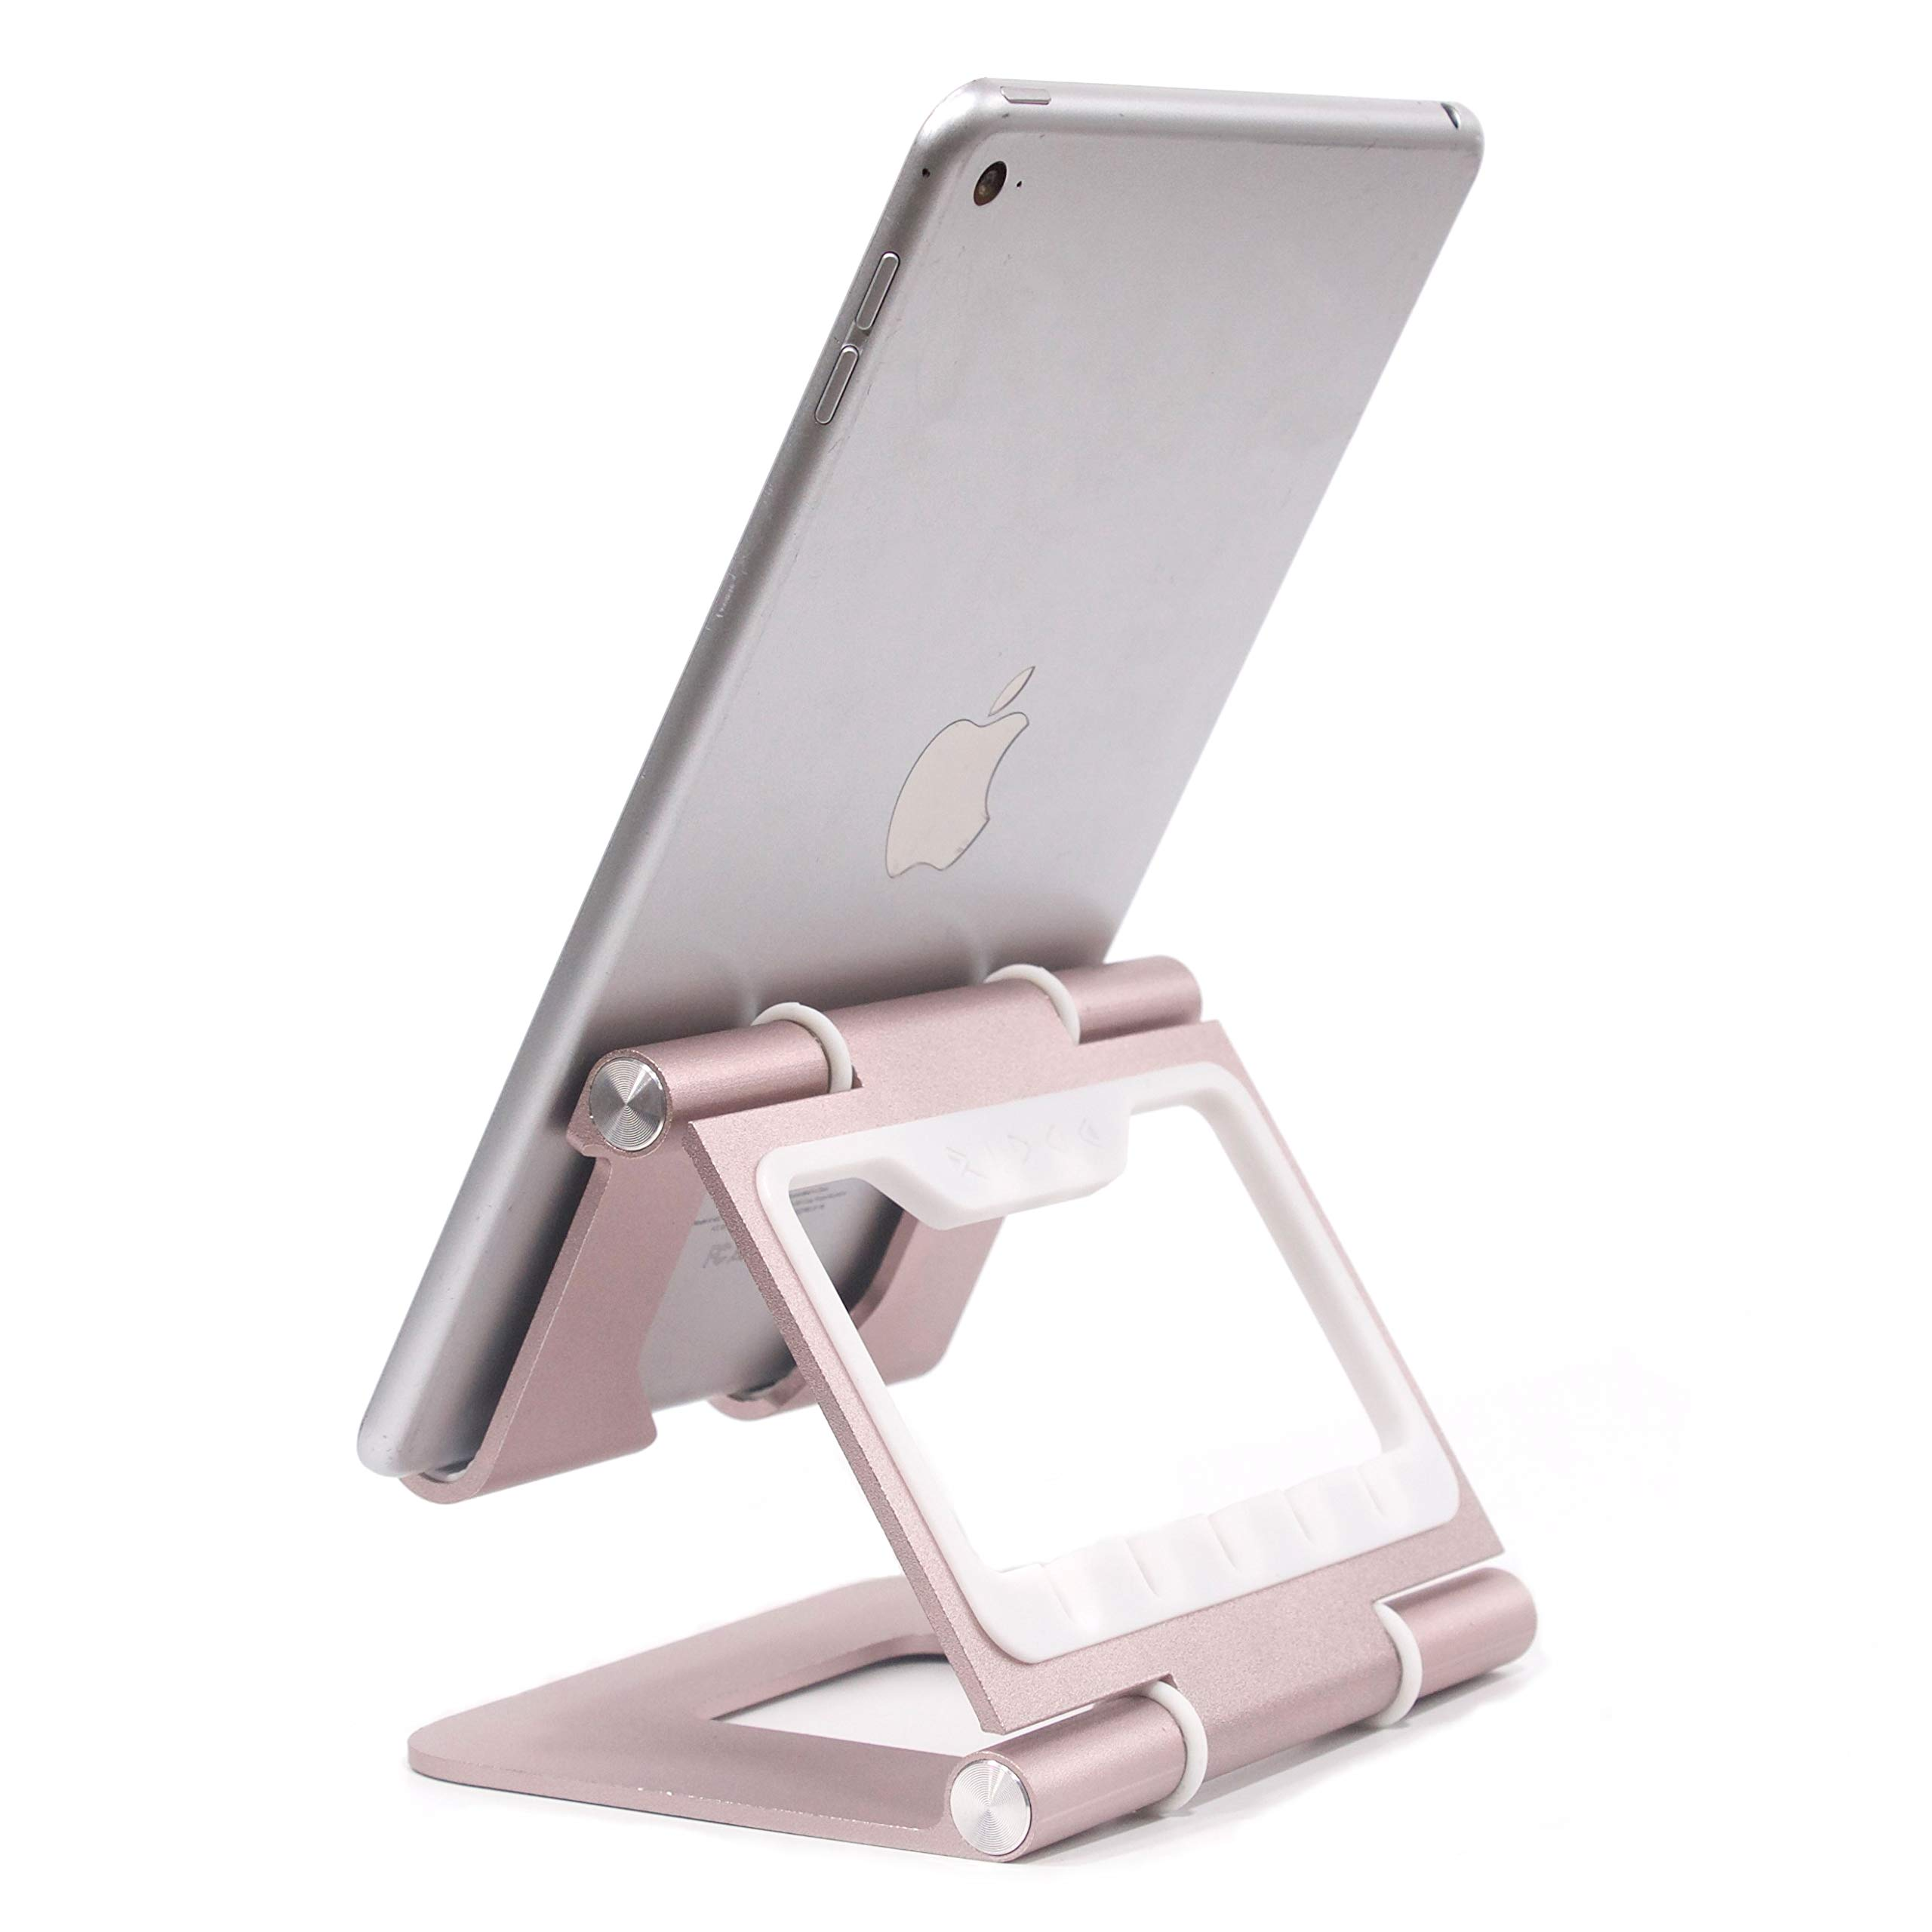 The Ridge Stand Plus - Portable Adjustable Tablet/Cell Phone Stand for iPad Pro, Kindle E-Reader, Ergonomic Aluminum Cooling Stand for Desk, Vertical Holder for iPad Air, Samsung Galaxy Note 10.1